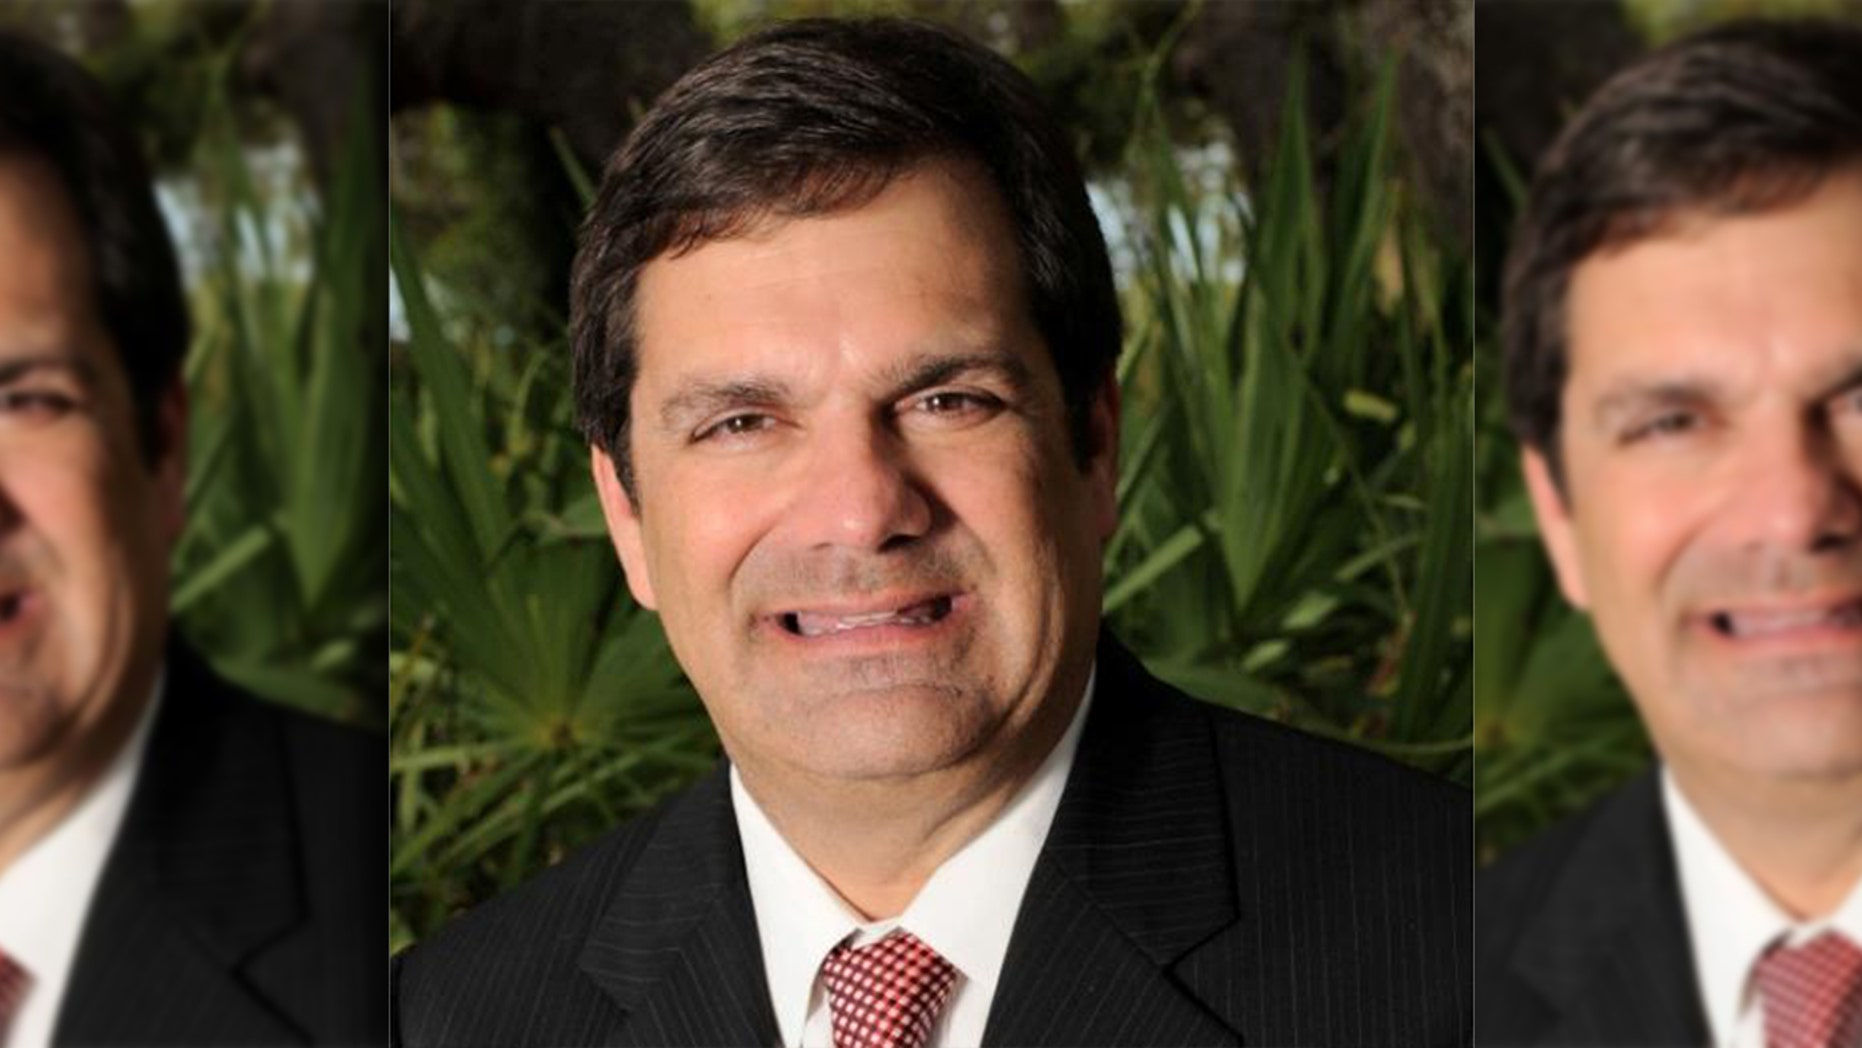 Rep. Gus Bilirakis, R-Fla., is under fire for seemingly taking credit for a bill related to the opioid epidemic that he didn't sponsor.